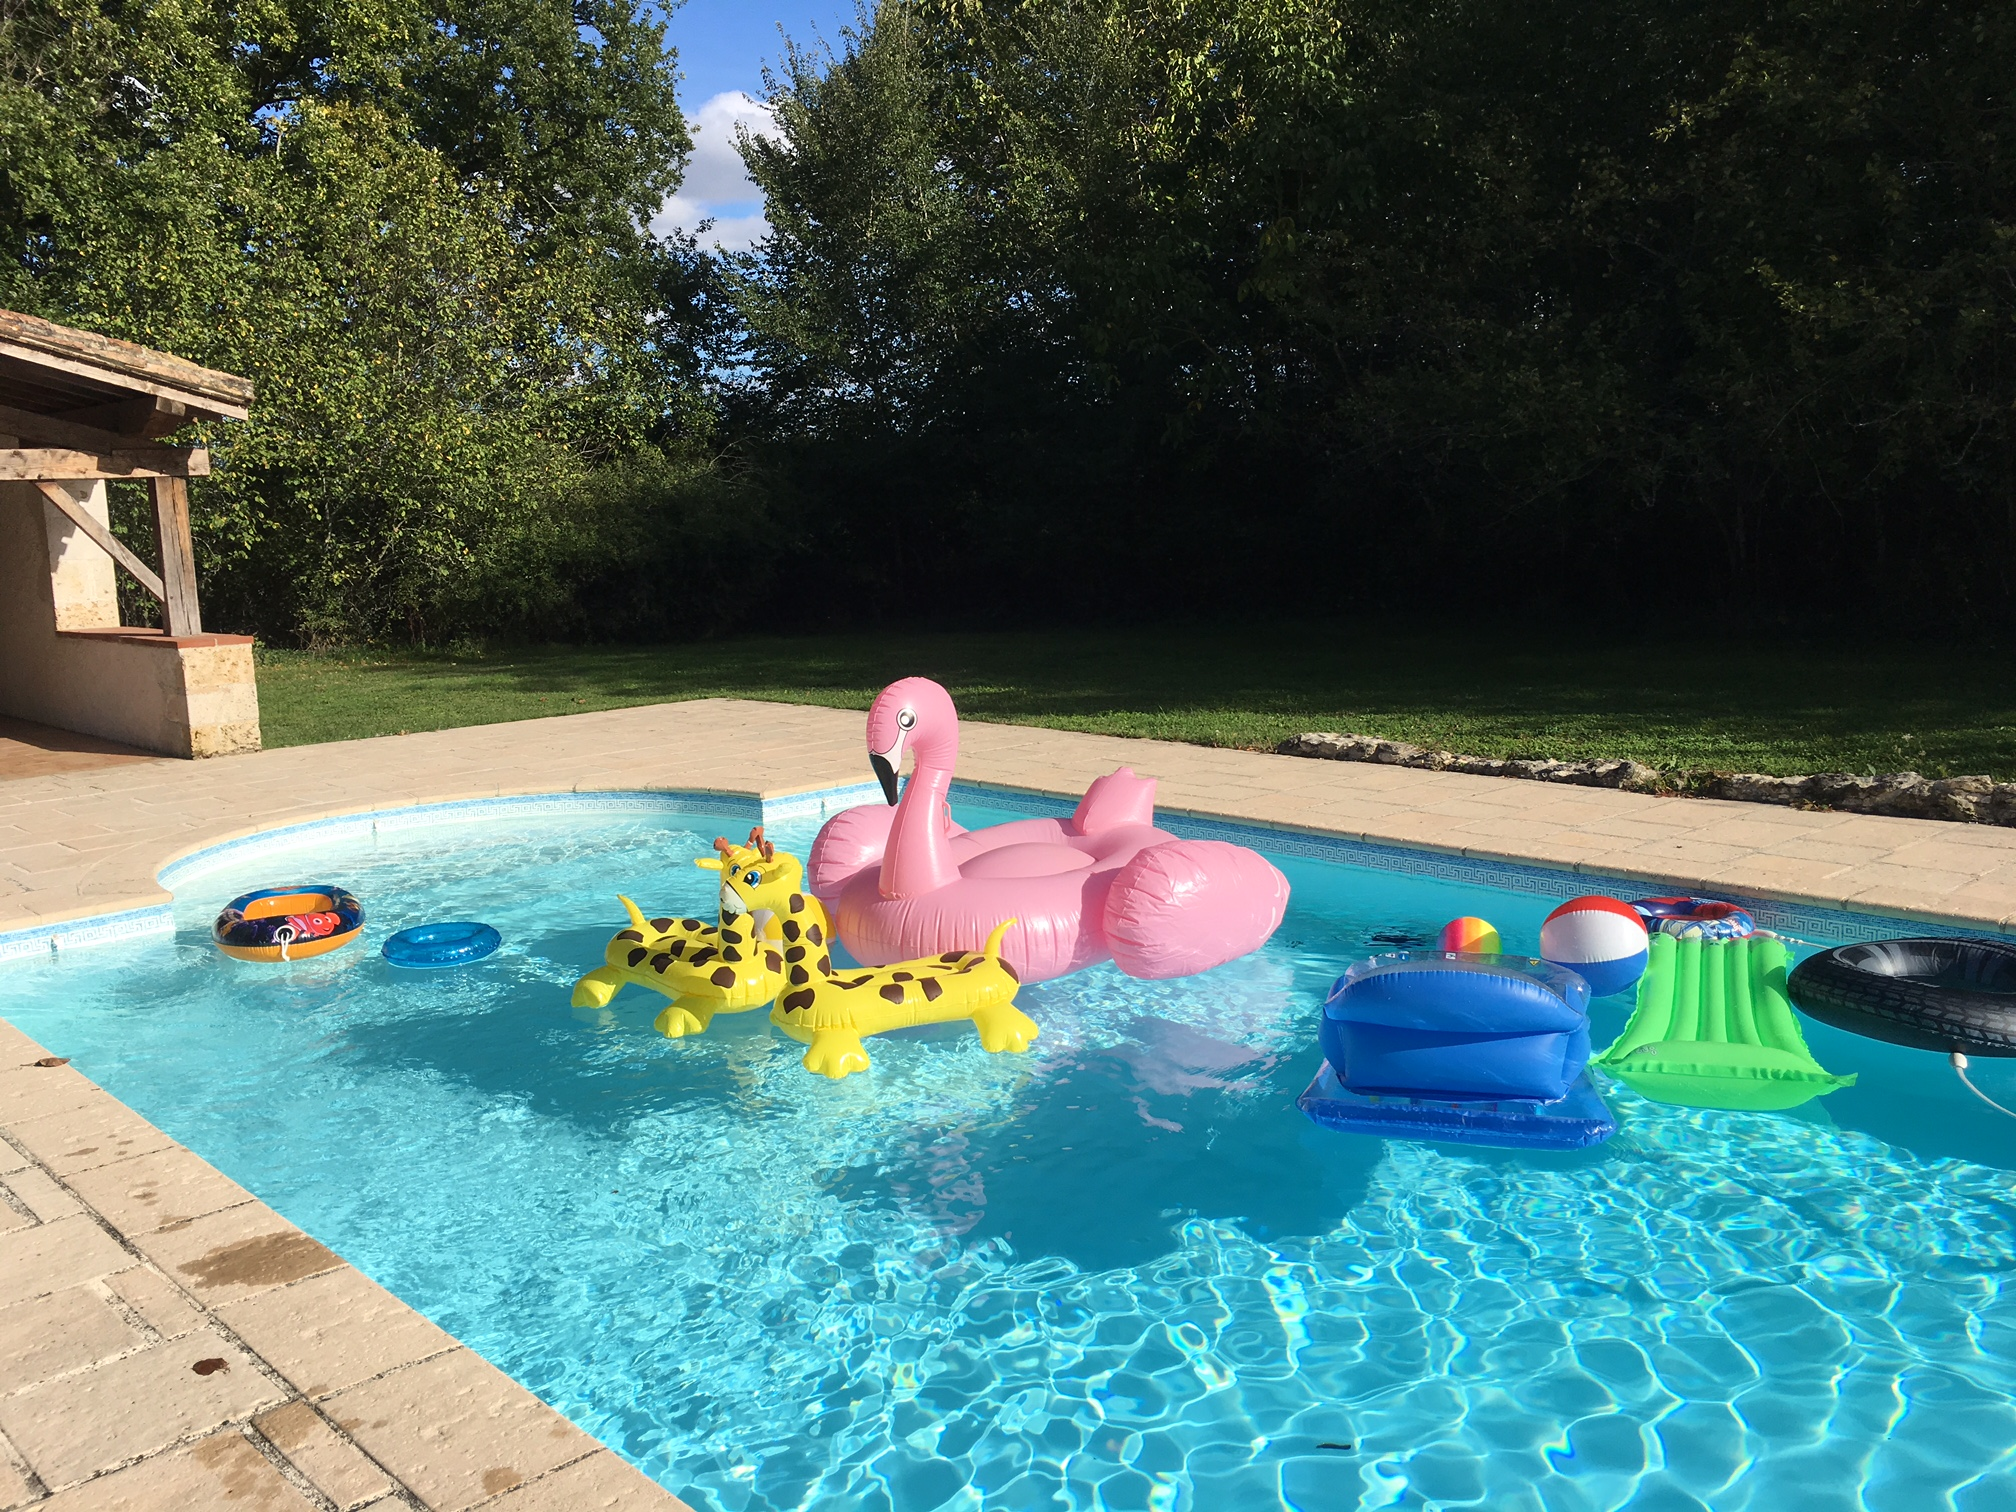 The Inflatables.